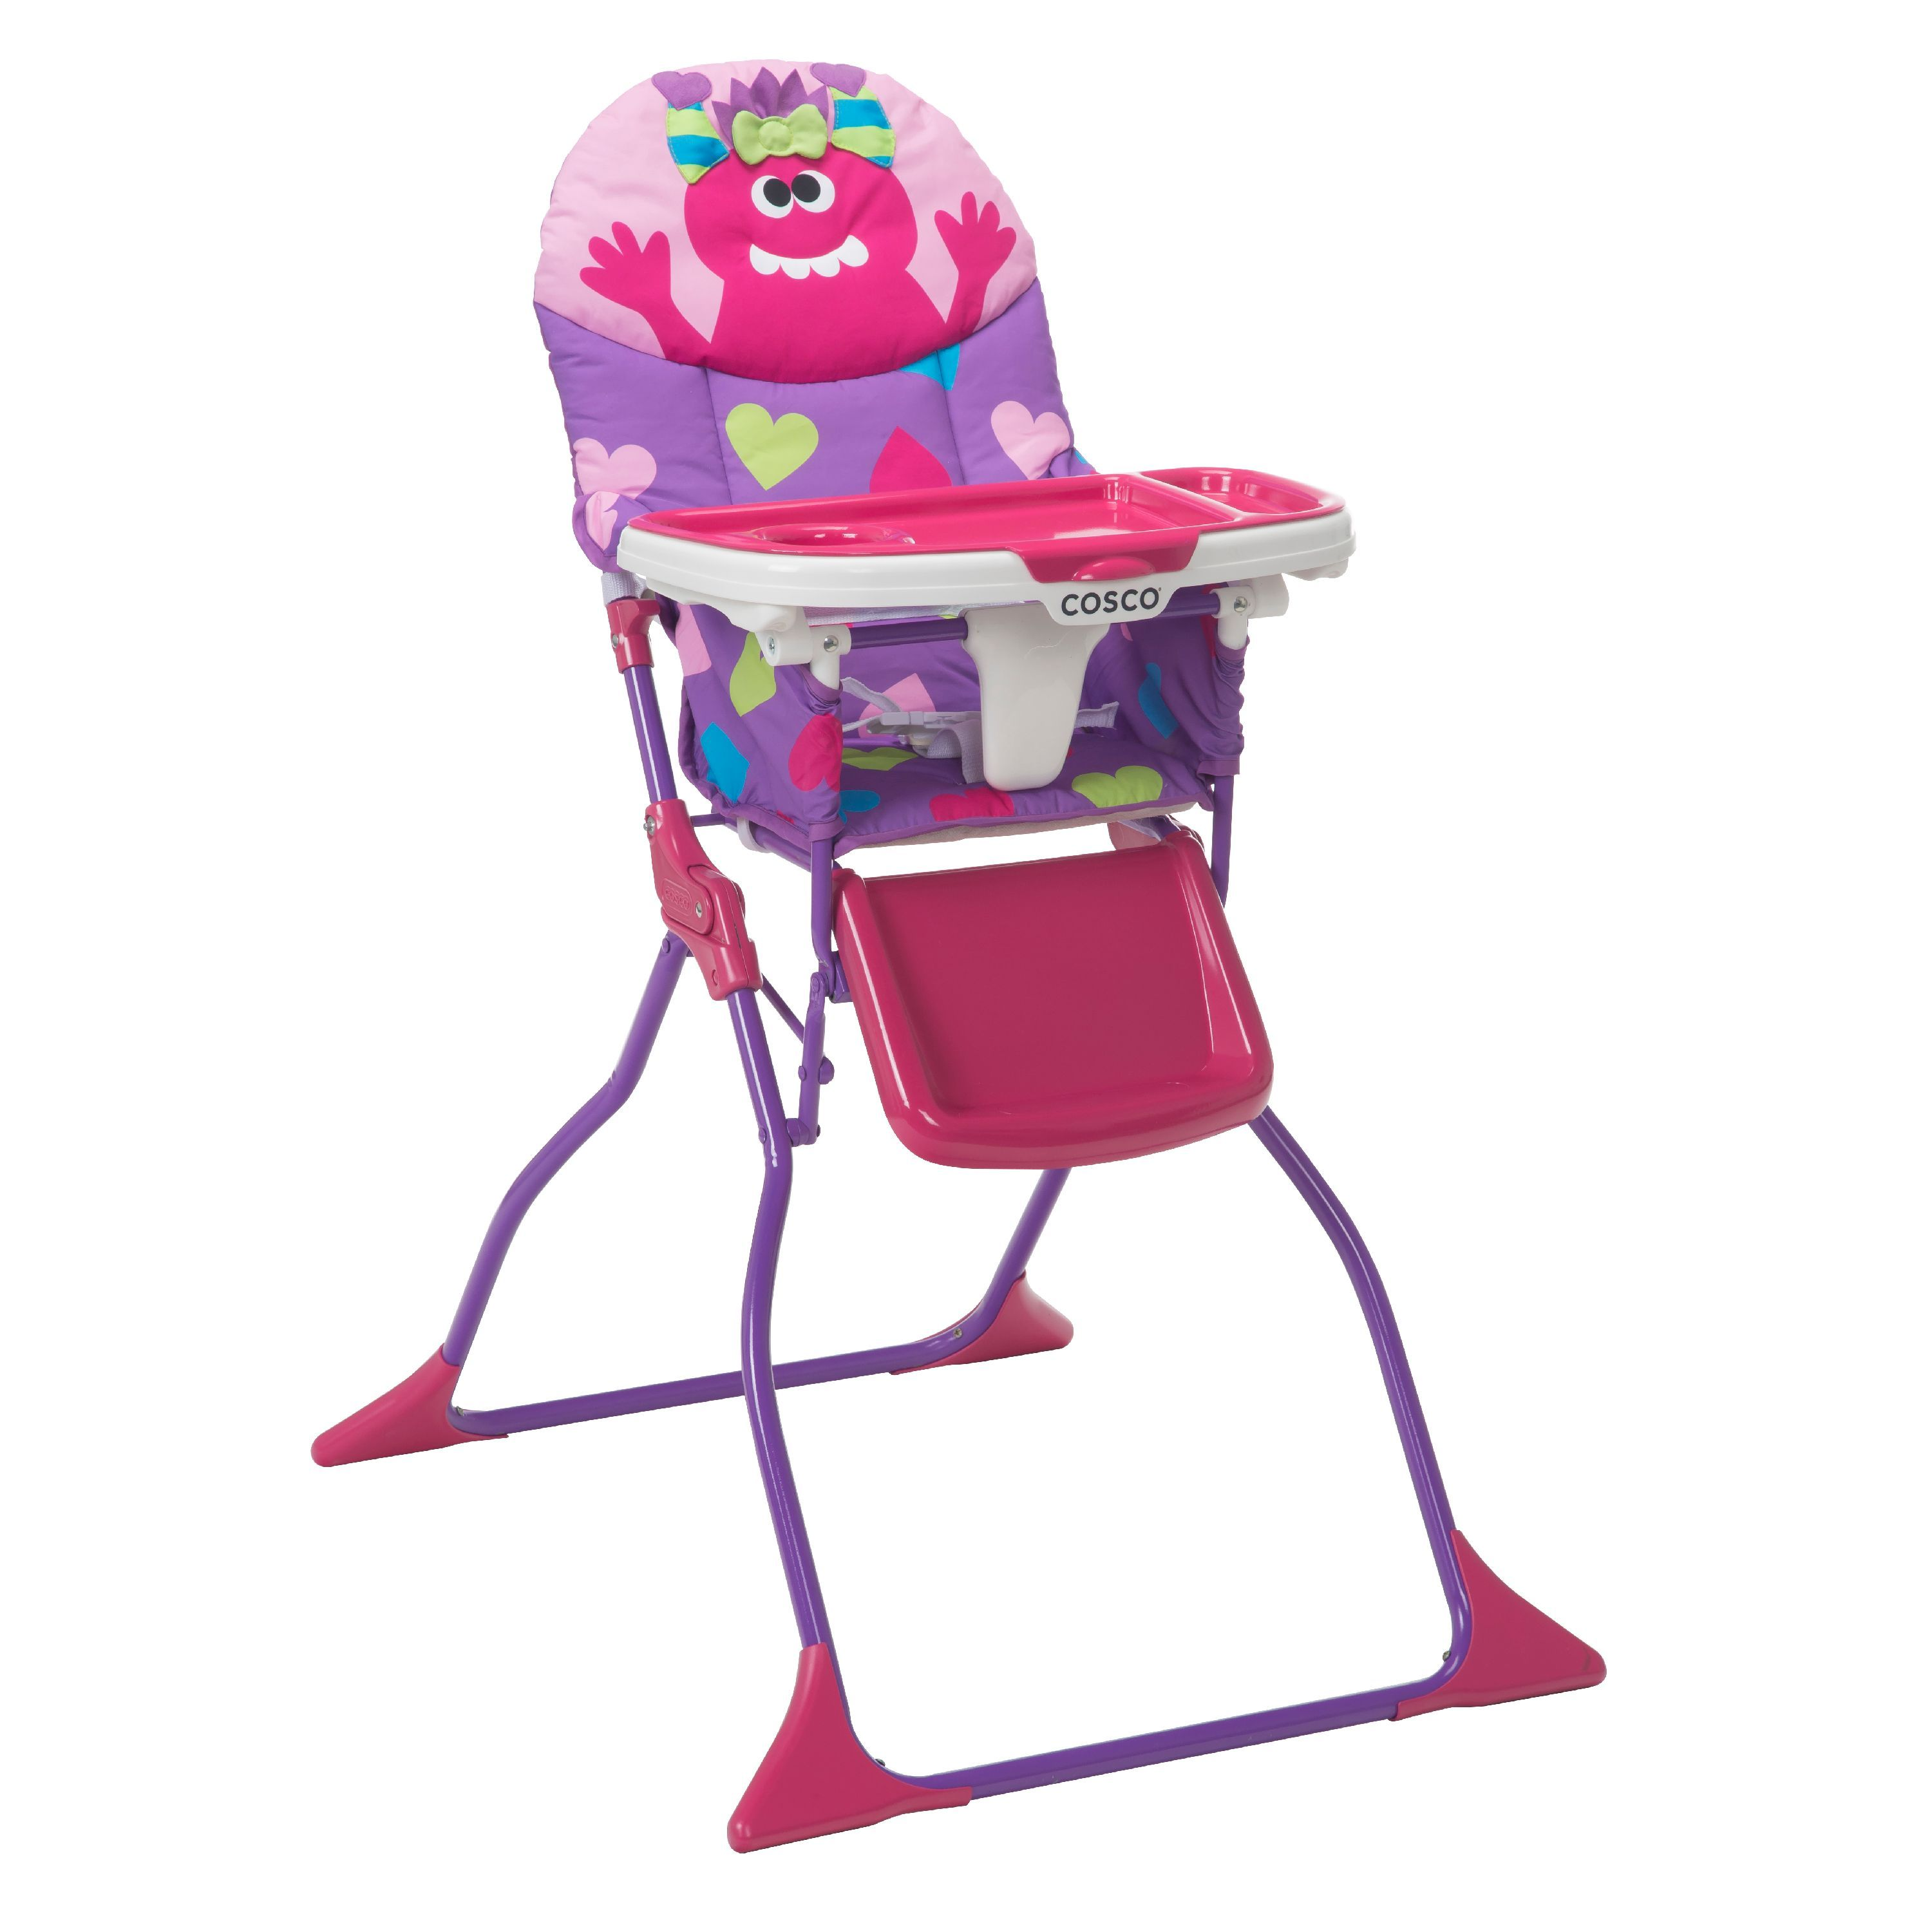 Cosco Simple Foldaaa Deluxe High Chair Monster Shelley In 2020 High Chair Cosco Chair